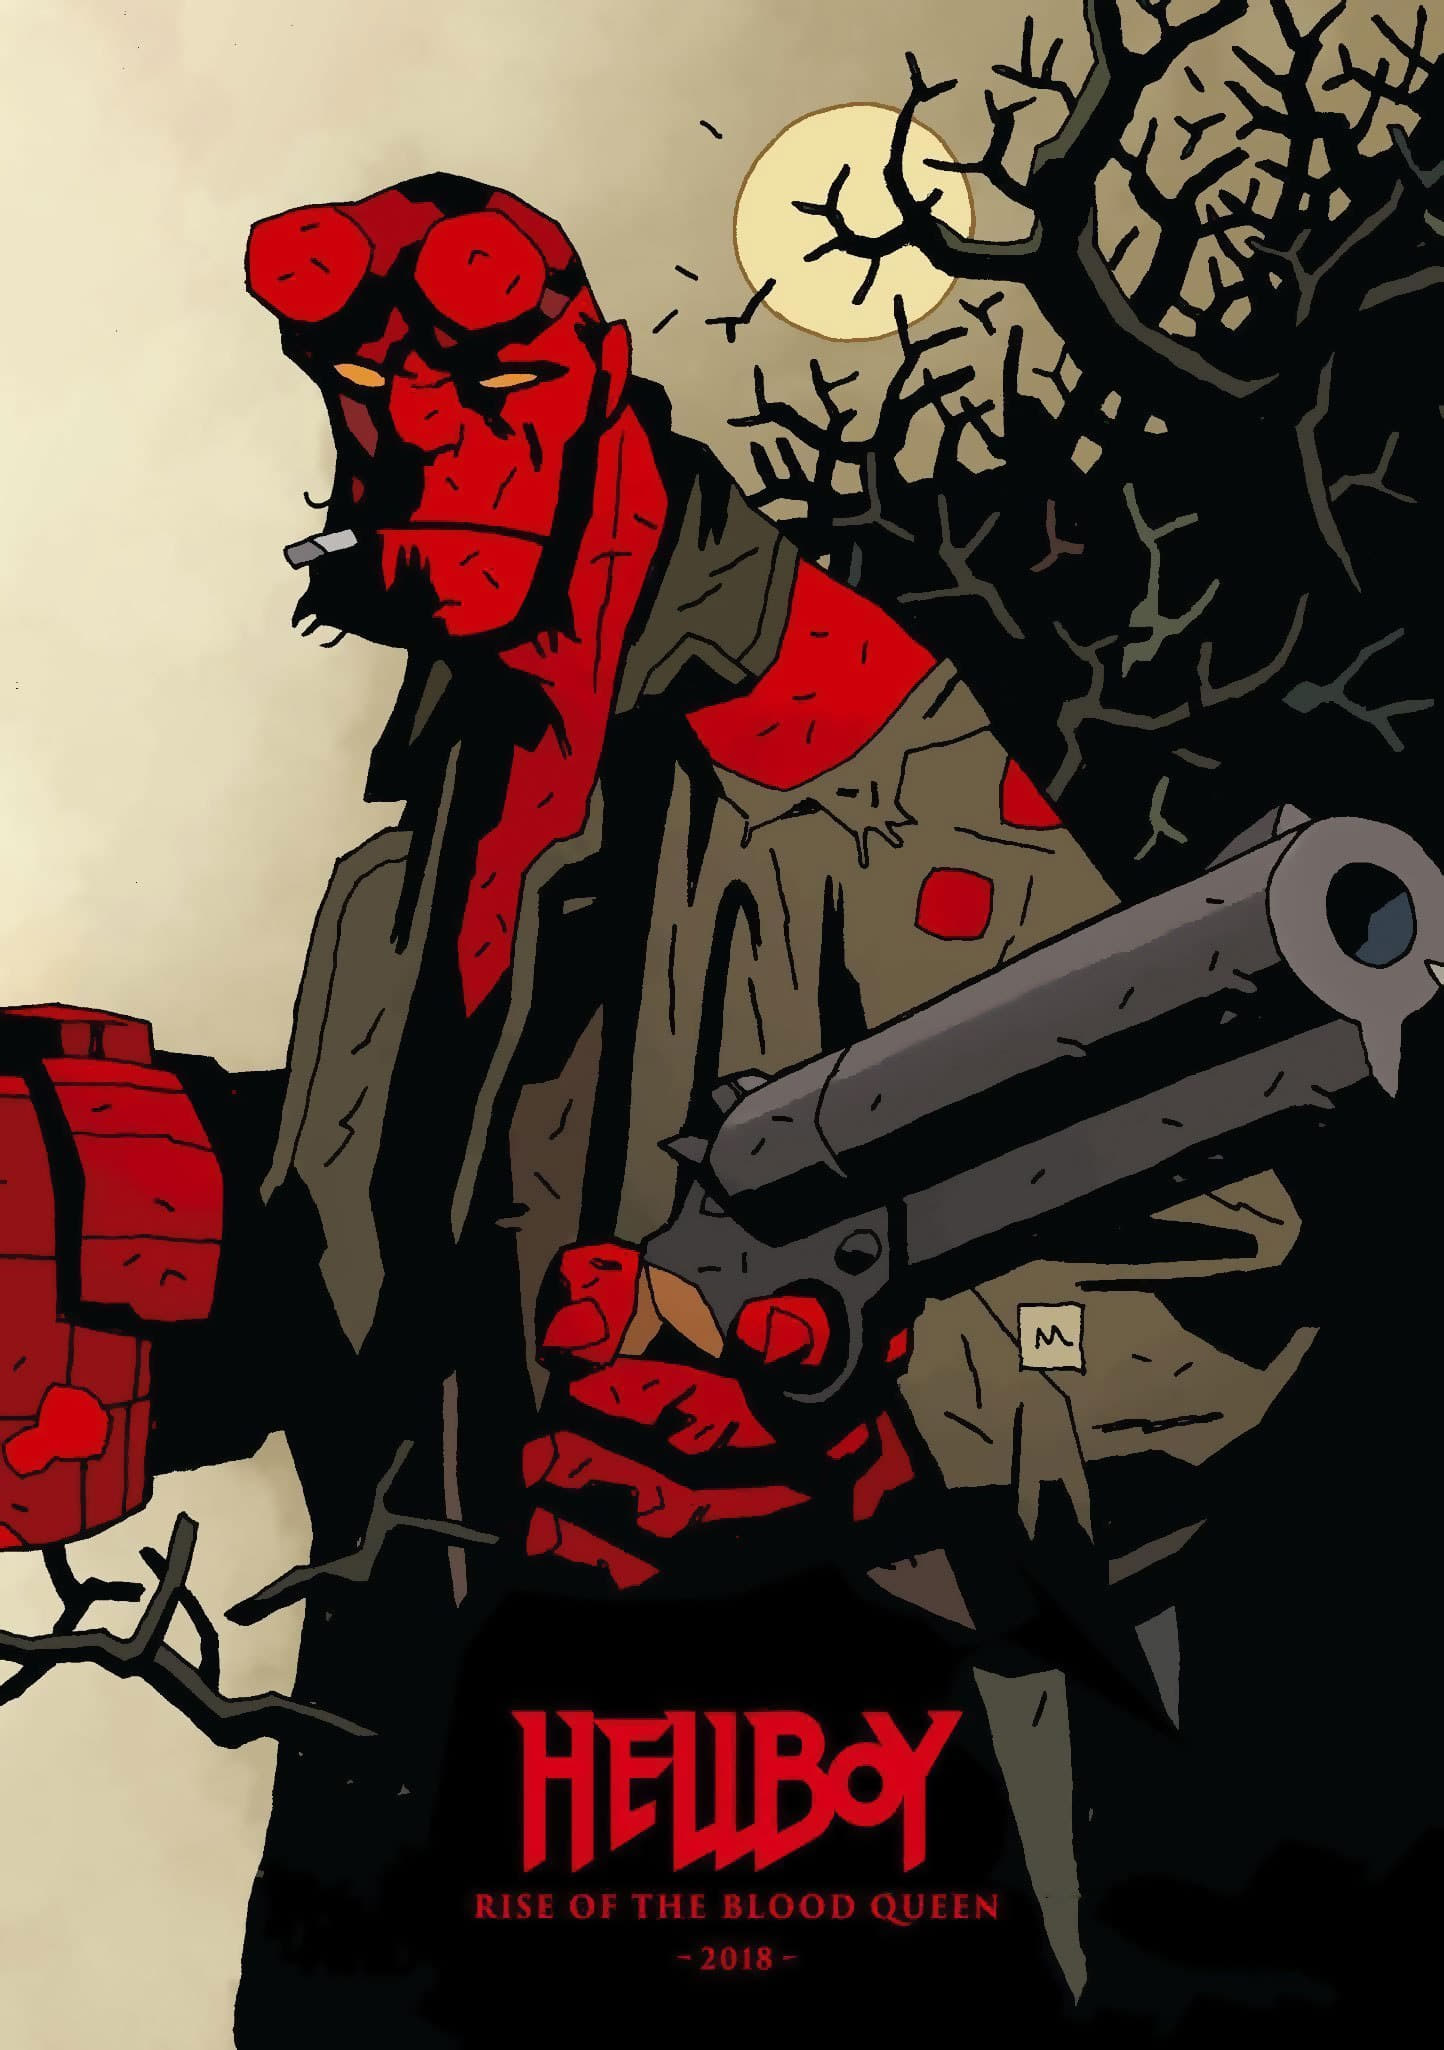 Poster and image movie Film Hellboy - Hellboy 2019